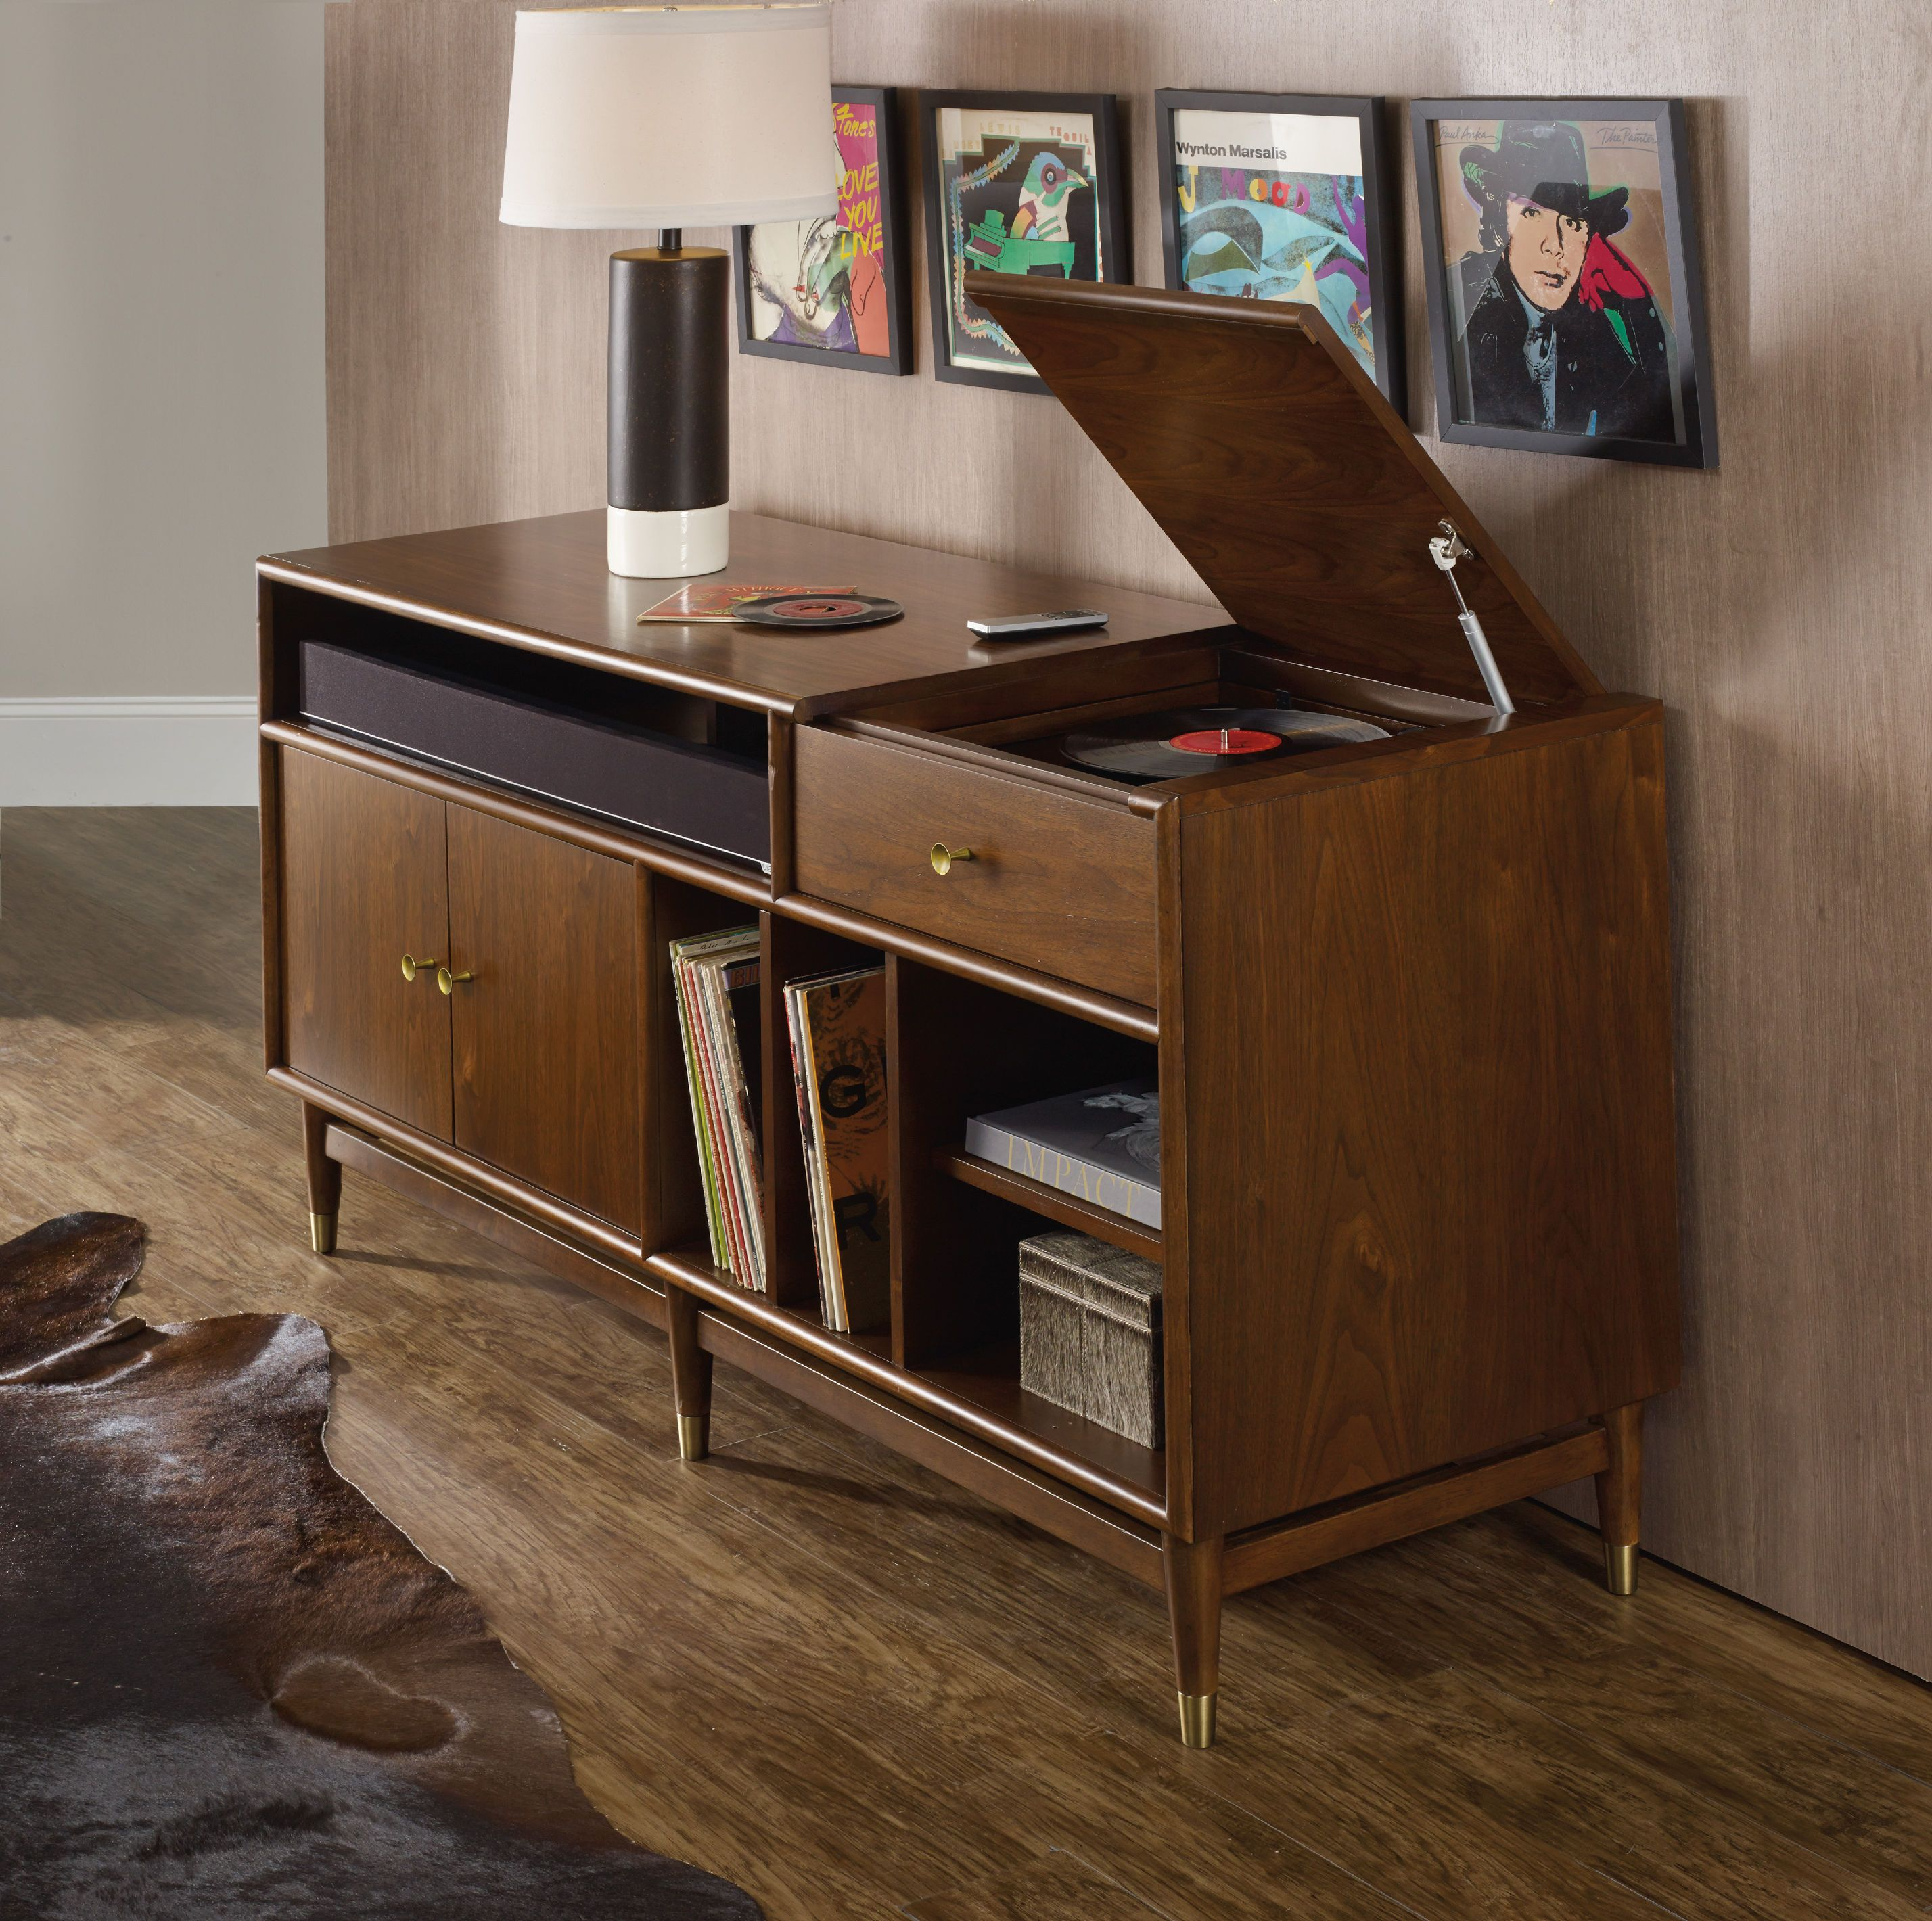 Merveilleux Hooker Furniture Home Entertainment Studio 7H LP Record Player/Gaming  Entertainment Console 5398 55464